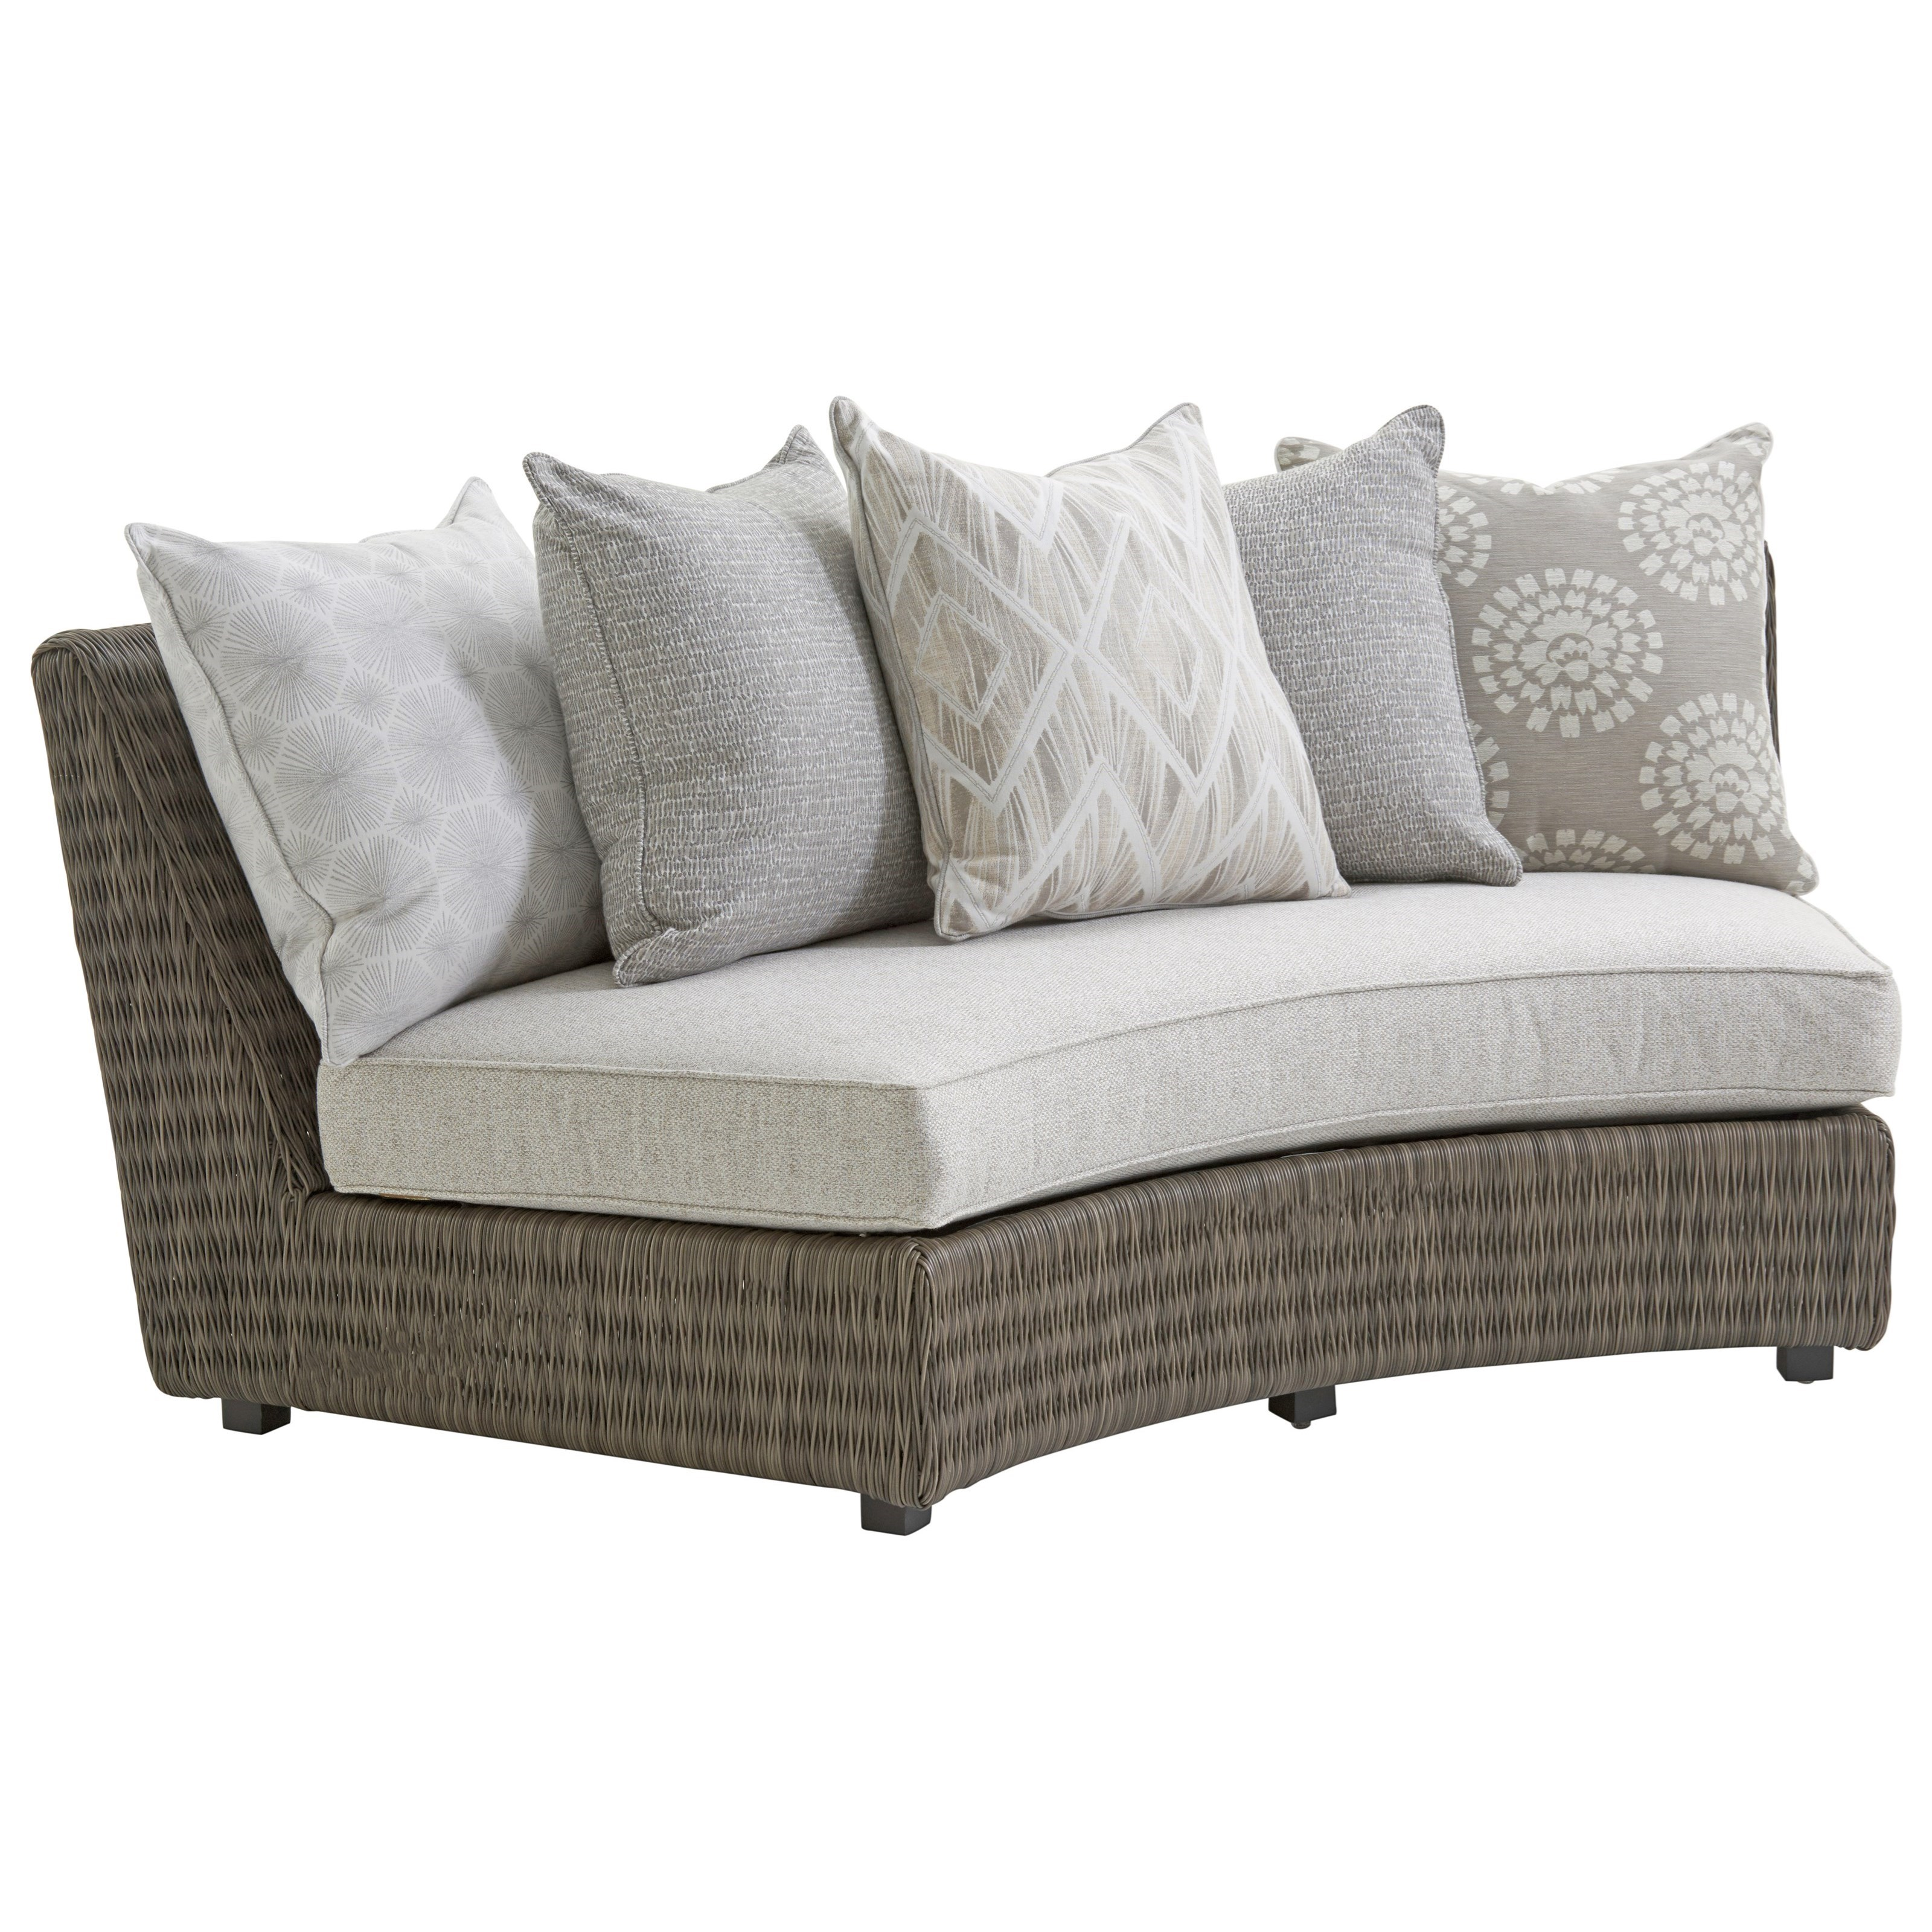 Outdoor Armless Sofa w/ Scatterback Cushions